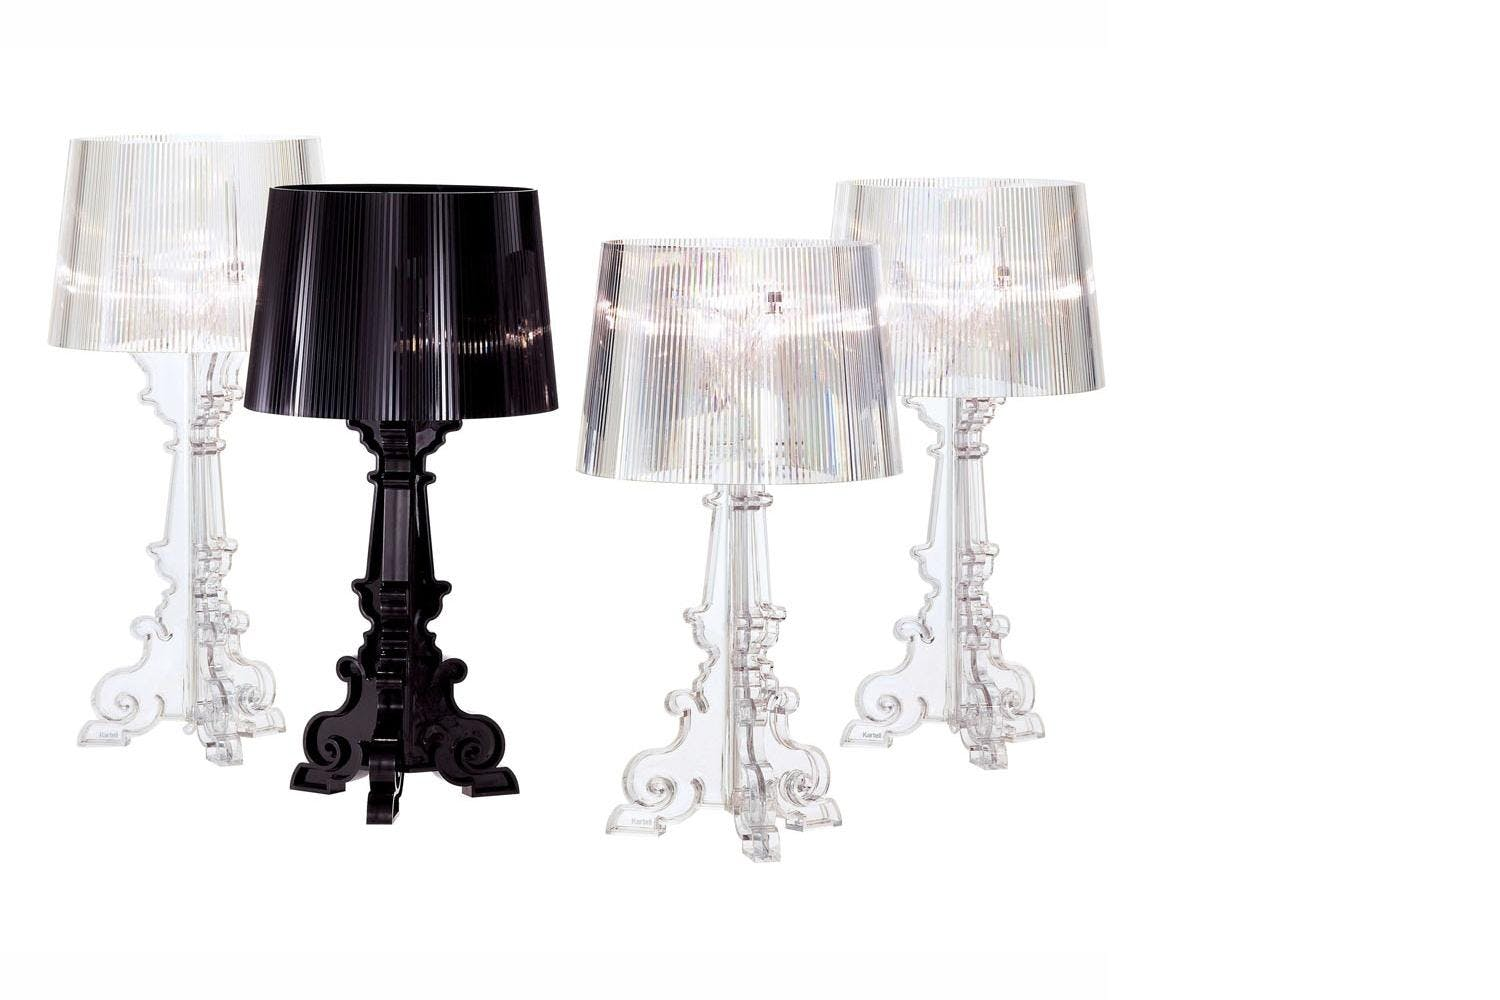 Bourgie table lamp by ferruccio laviani for kartell space furniture bourgie table lamp by ferruccio laviani for kartell geotapseo Choice Image